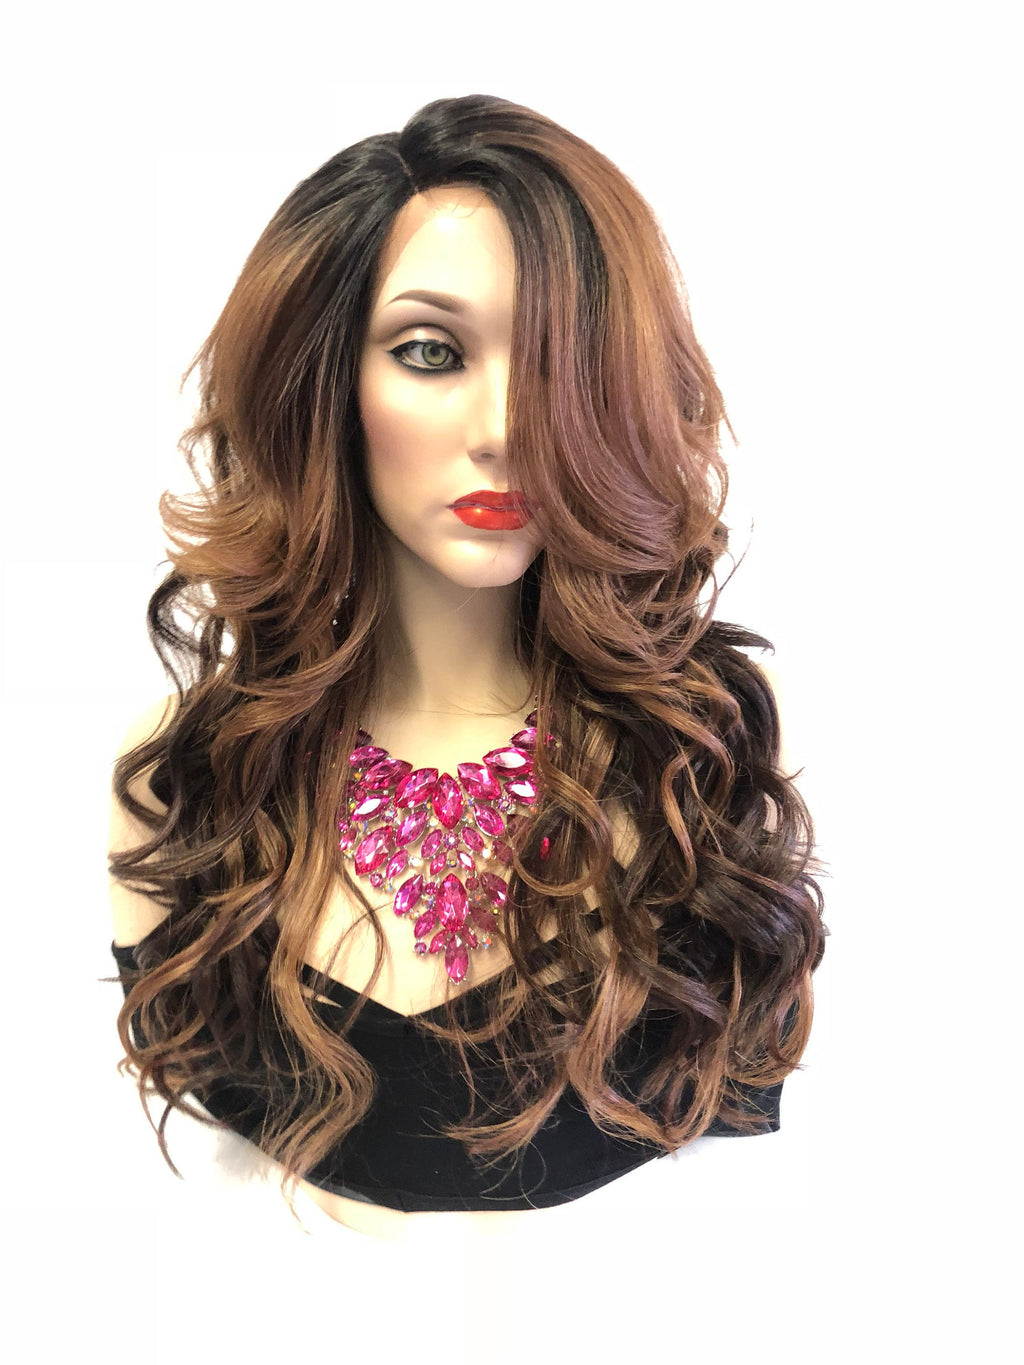 Balayage Brown Hair Lace Front Wig | Volume Curly Layere Hair + Bangs | Pandora